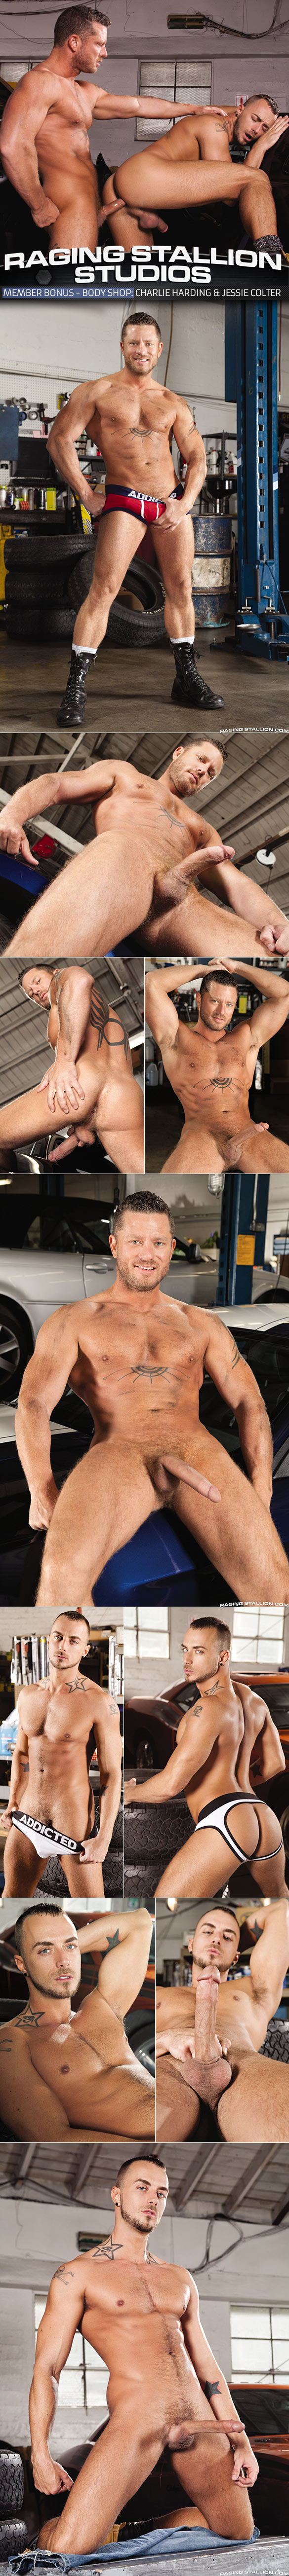 "Raging Stallion: Charlie Harding pounds Jessie Colter in ""Body Shop"""